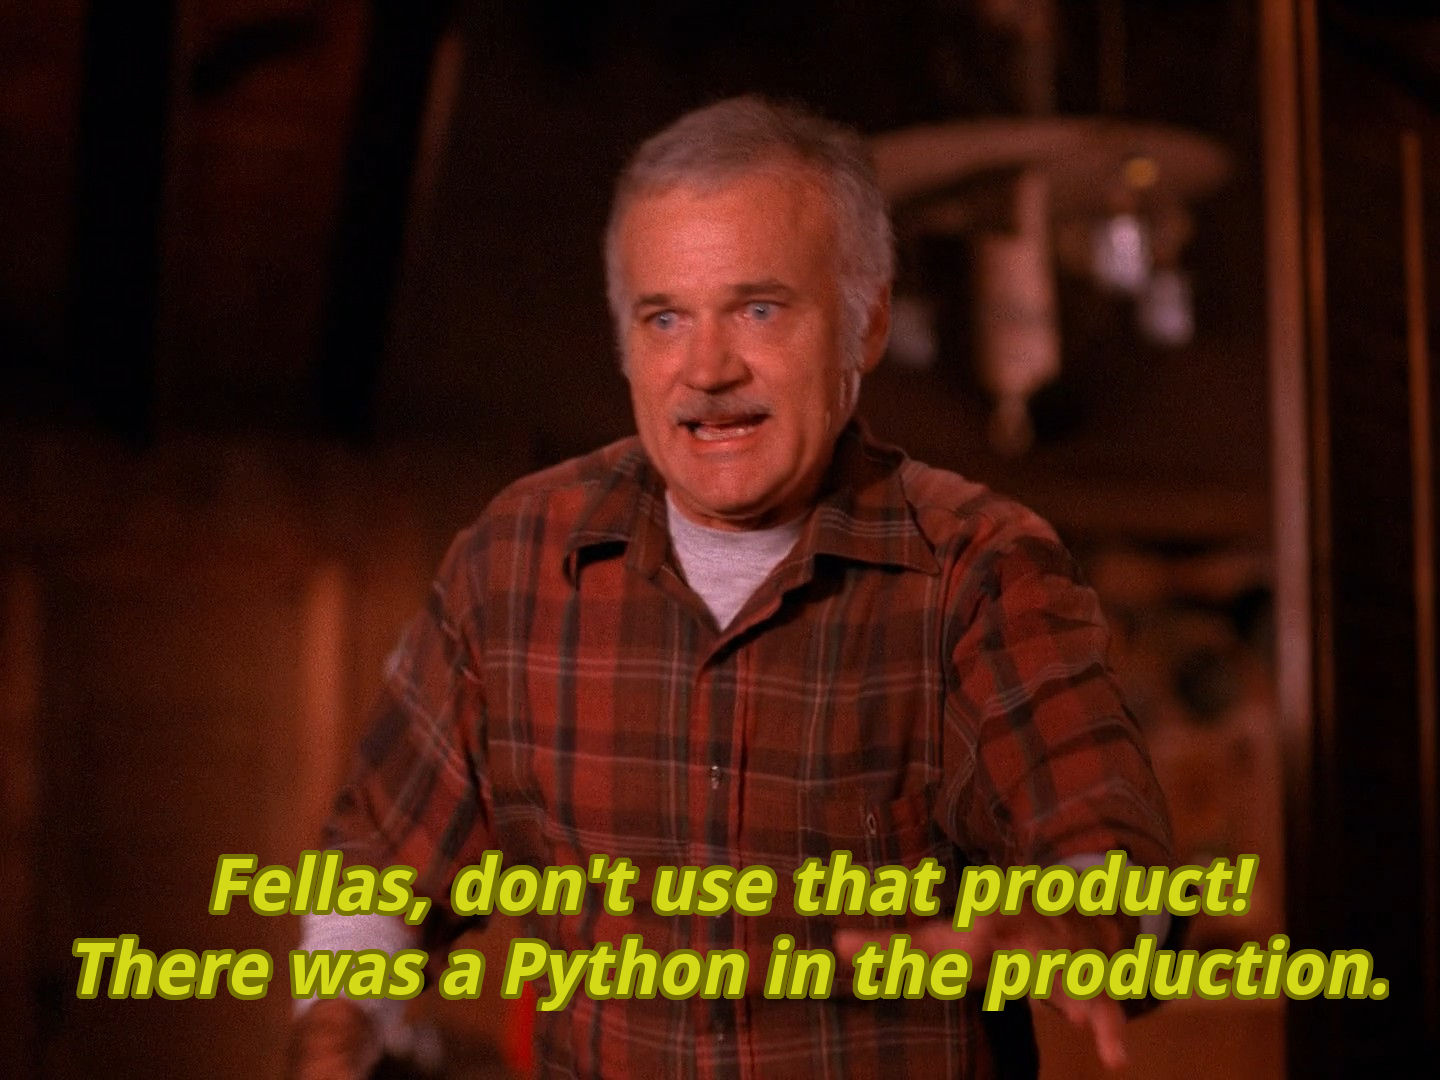 Fellas, don't use that product! There was a Python in the production